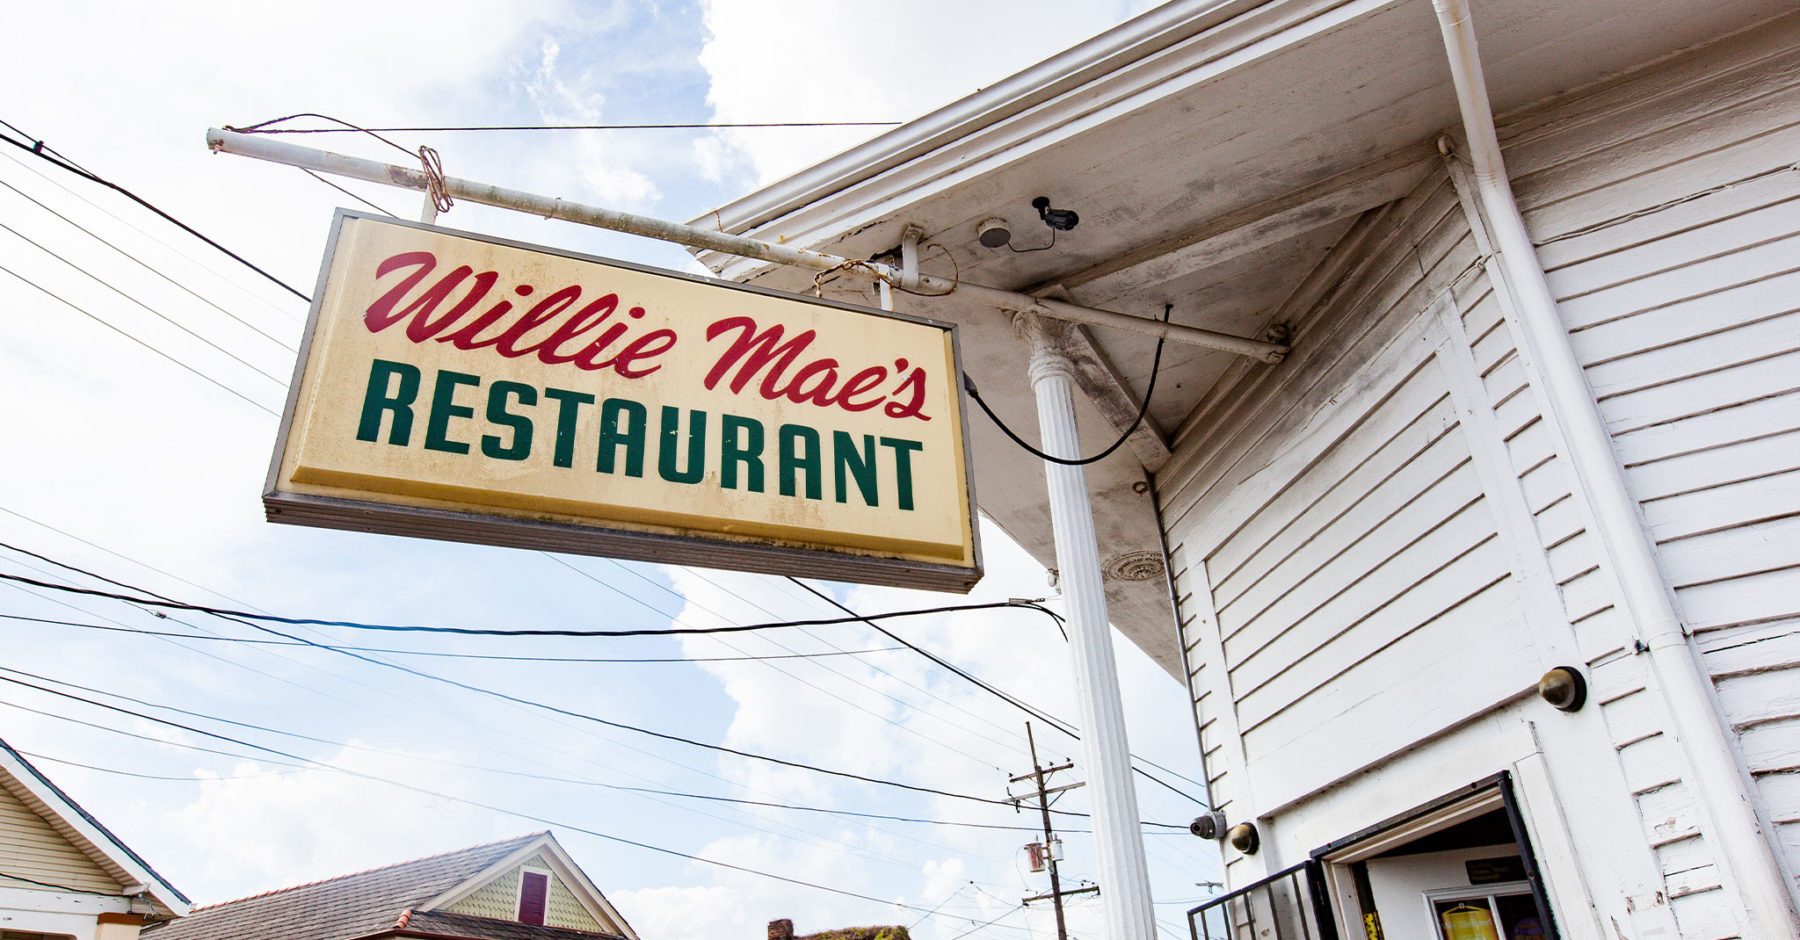 Willie Maes Exterior